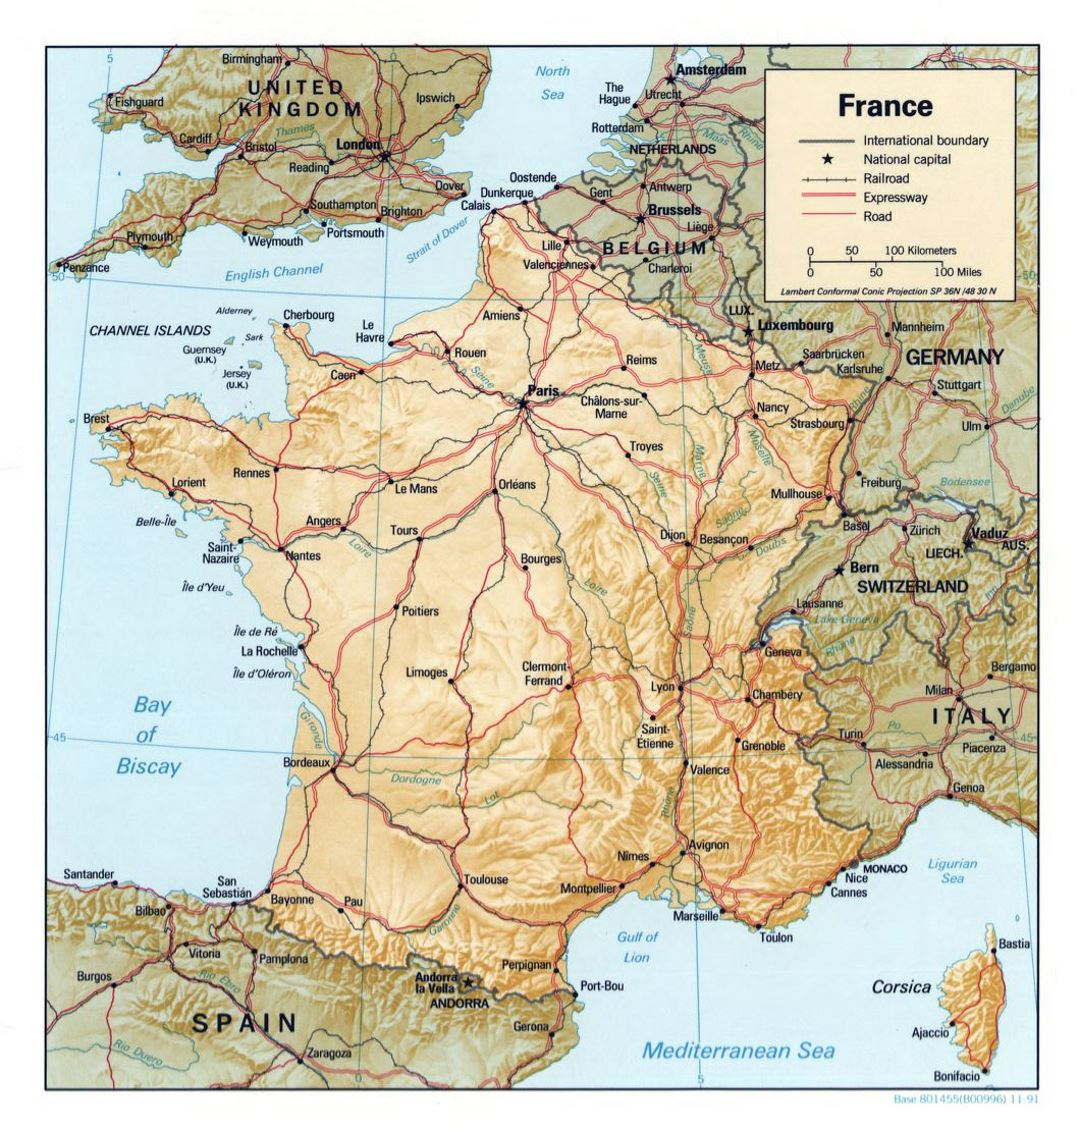 Map Of France Major Cities.Detailed Political Map Of France With Relief Roads And Major Cities